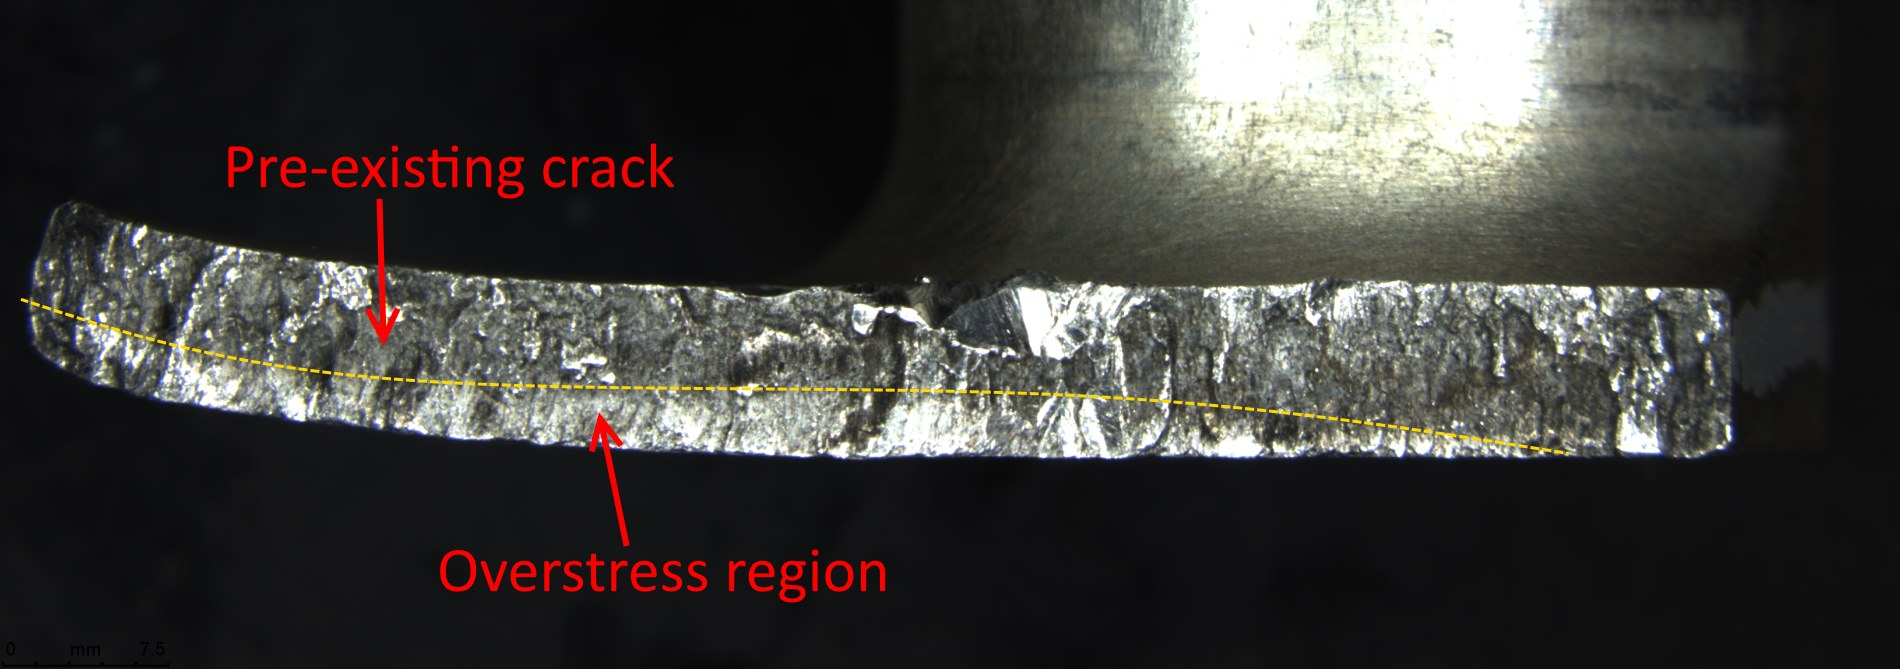 Figure 3: Fracture surface illustrating the pre-existing crack and the overstress region, which fractured when the bracket finally failed.